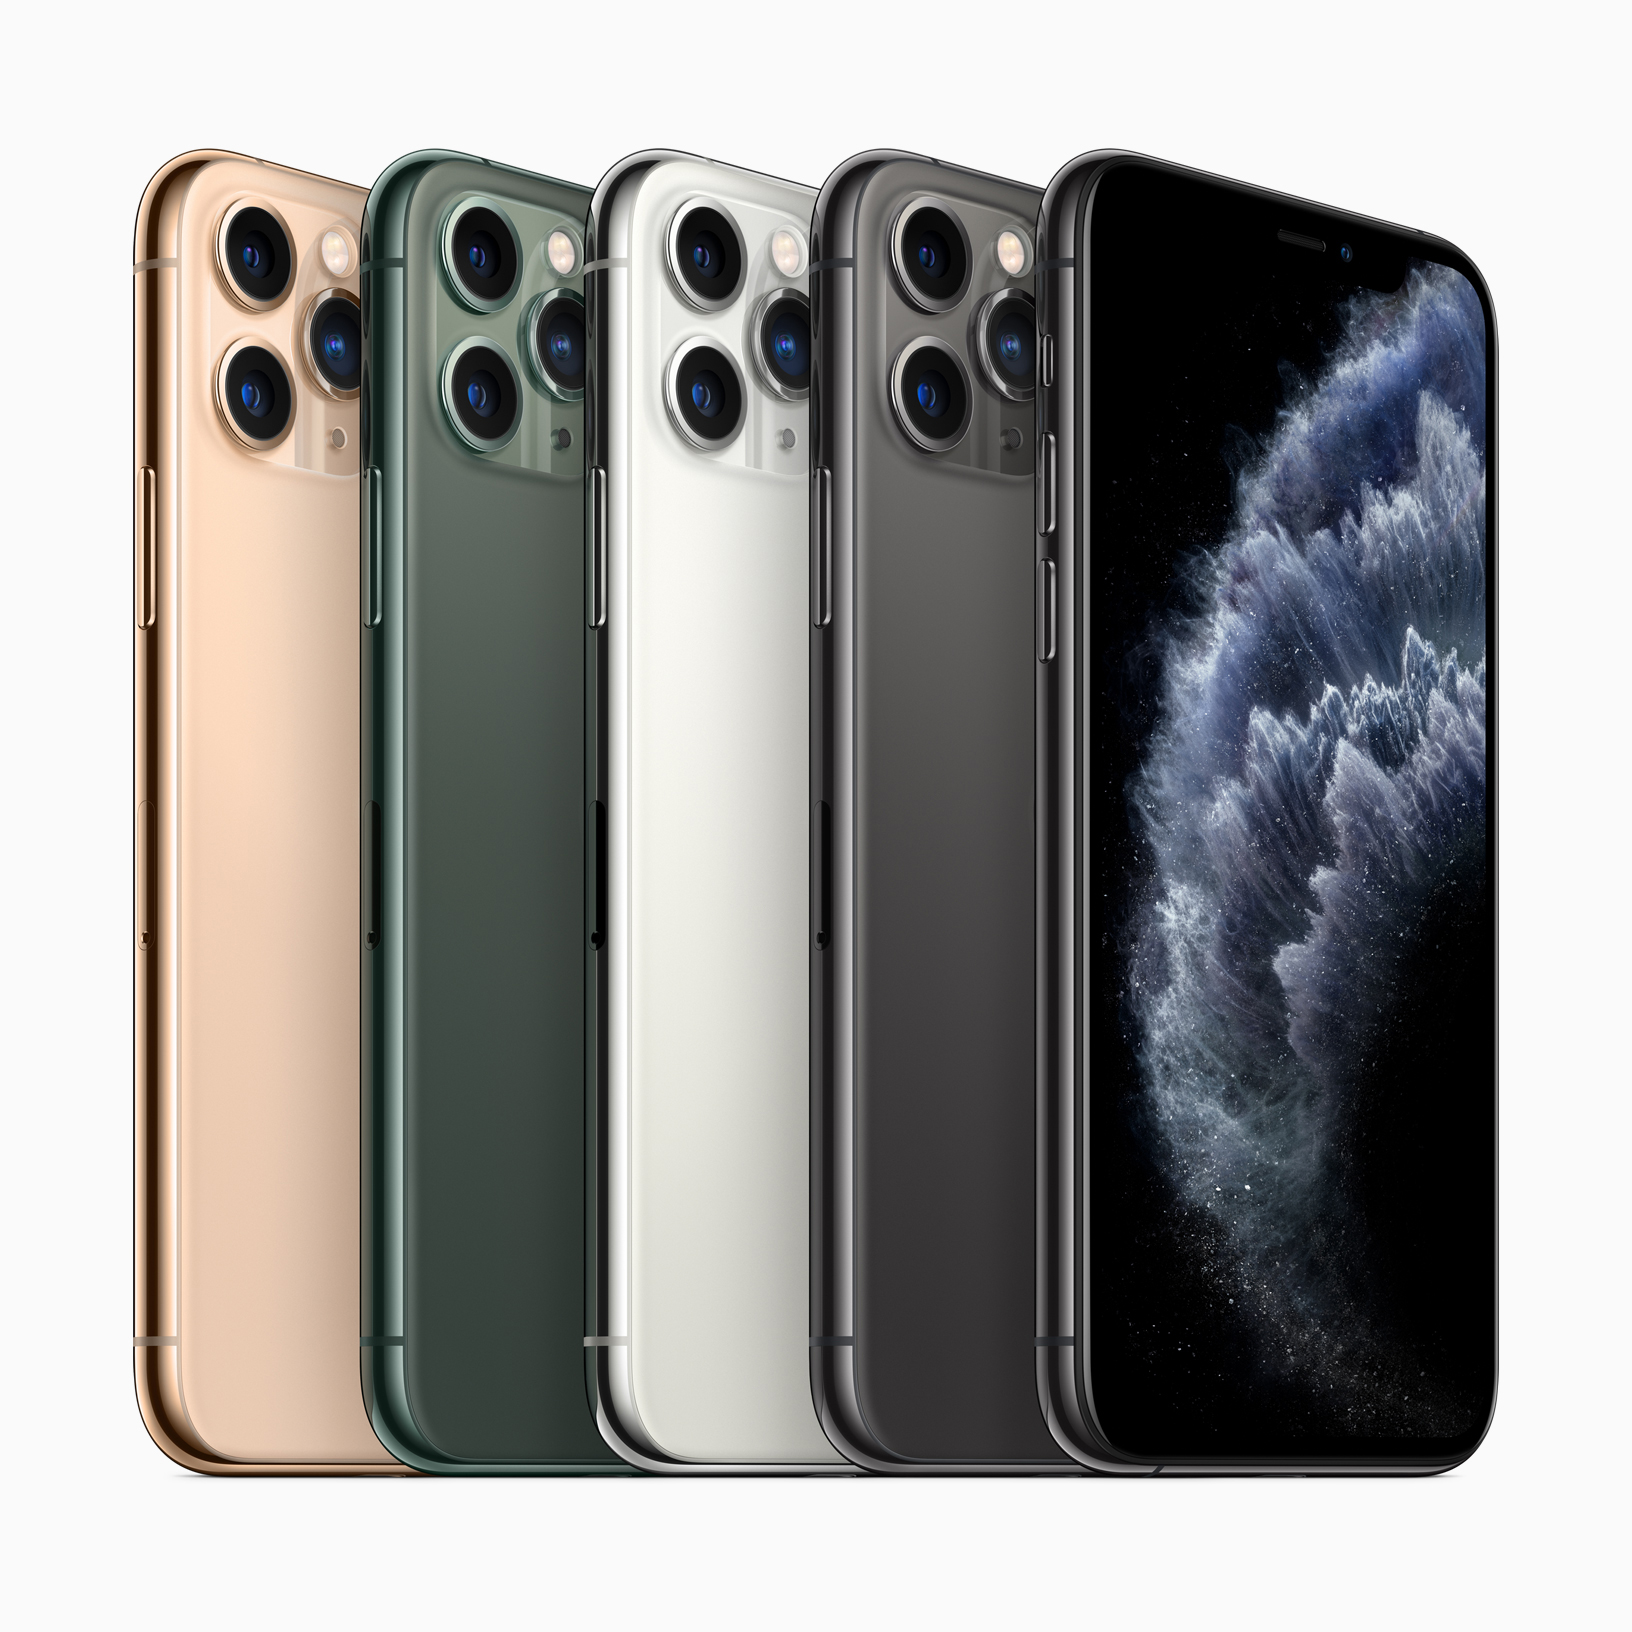 Verizon Drops Apple Iphone 11 Pro Prices To A New Low Of Only 649